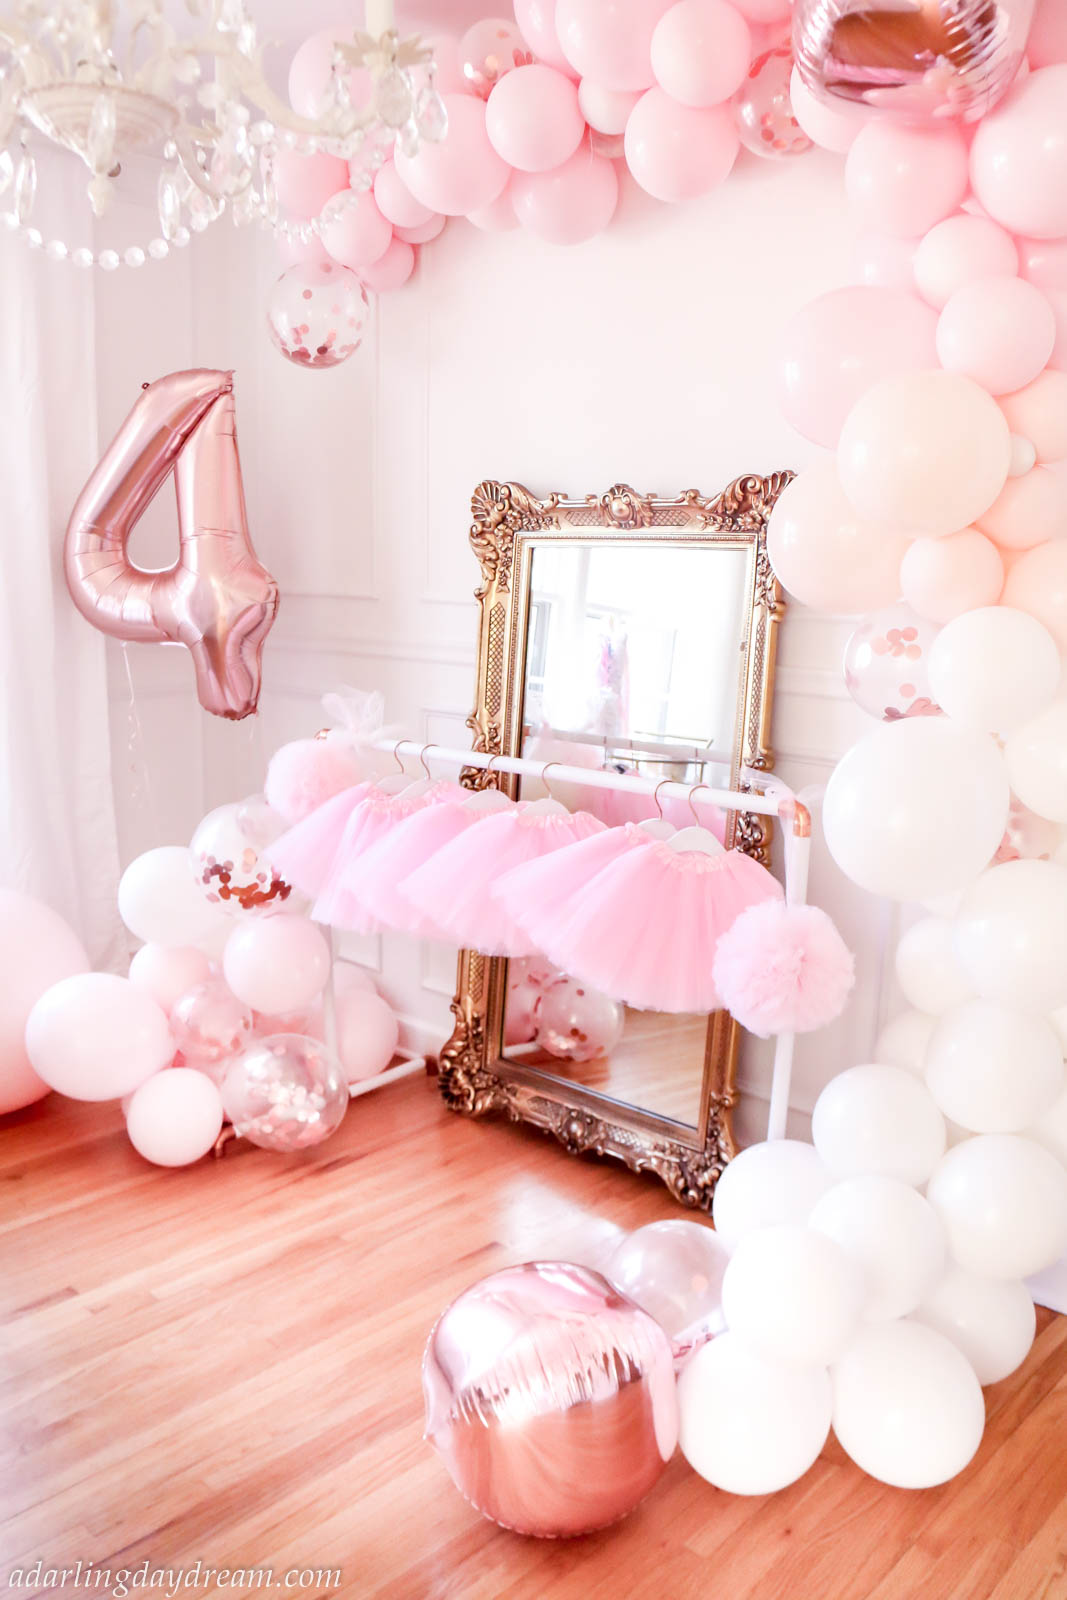 Bella-s-forth-birthday-party-ballerina-unicorn-47